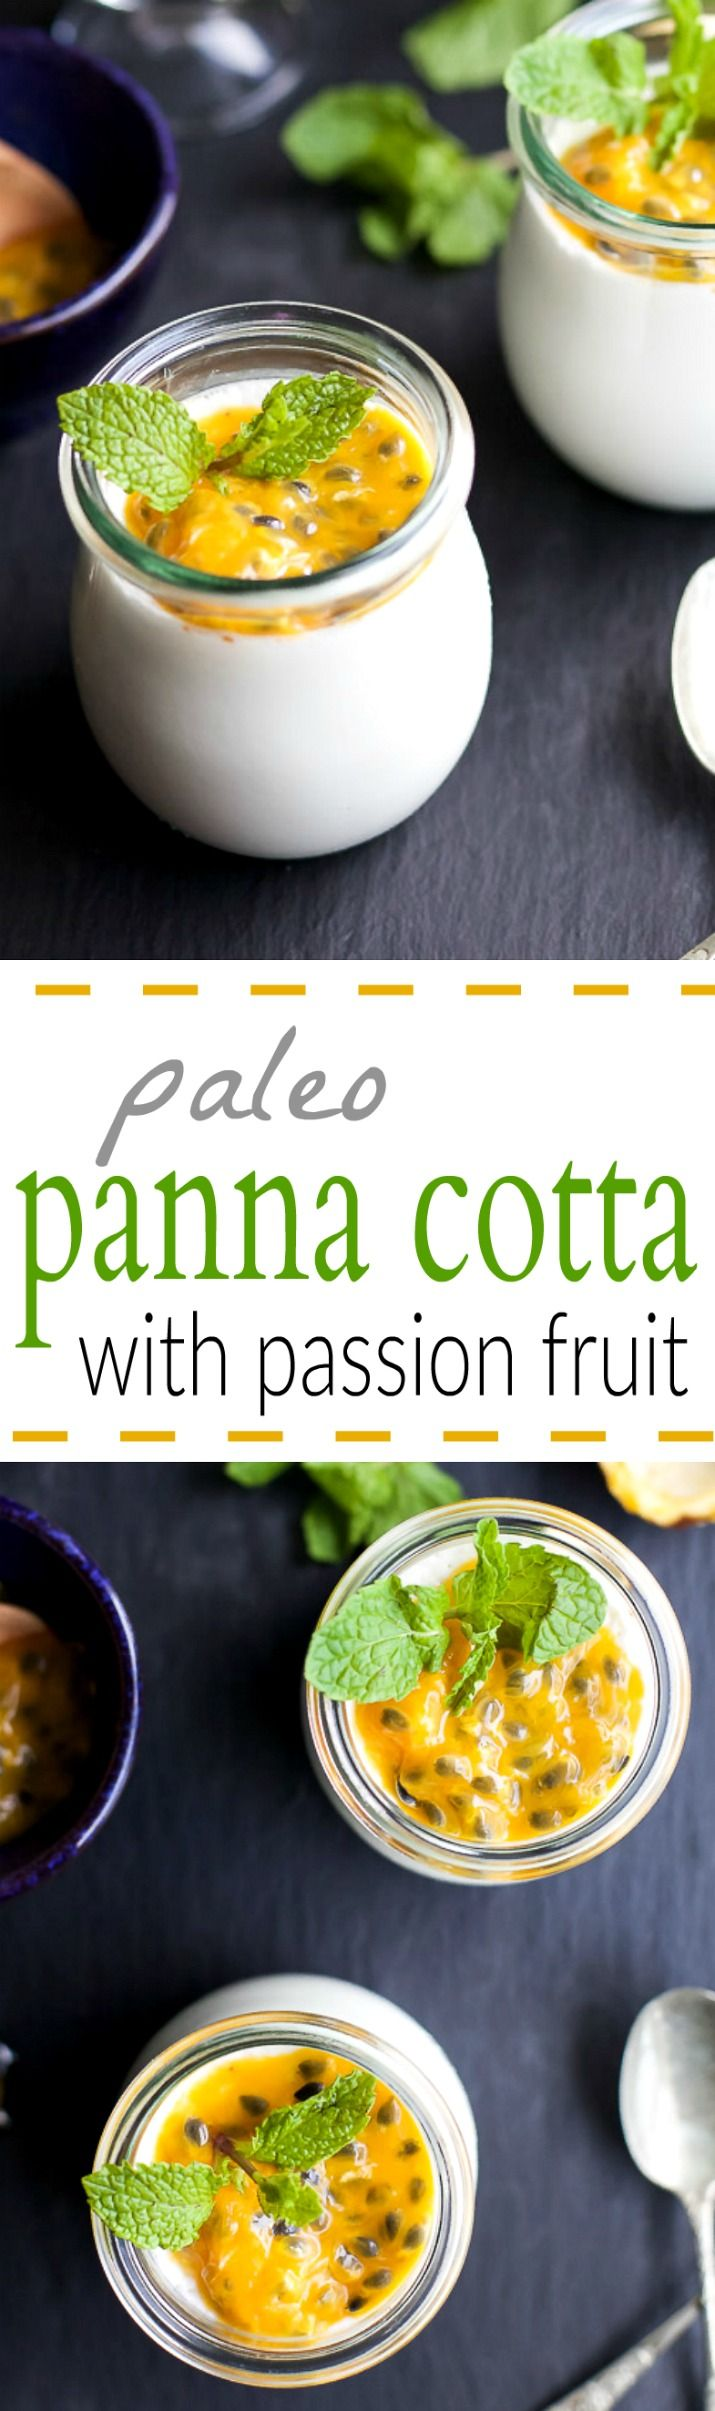 Paleo Vanilla Panna Cotta with Passion Fruit - a slightly sweet creamy Panna Cotta recipe that'll quickly become your new favorite dessert! And guess what, it's guilt free too!   joyfulhealthyeats.com